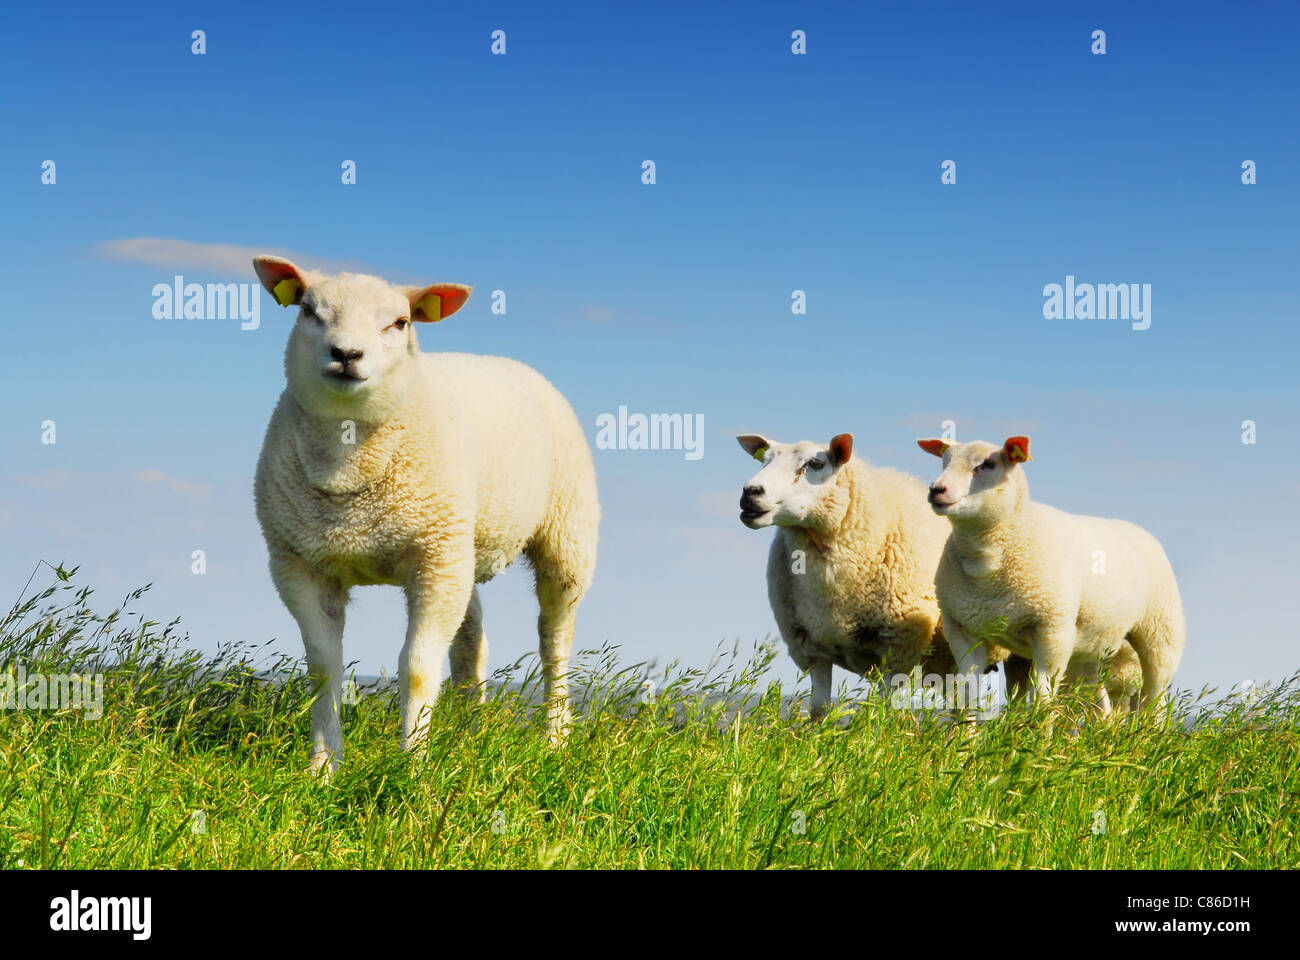 Three little lambs on island Texel, famous for its wool in Holland - Stock Image